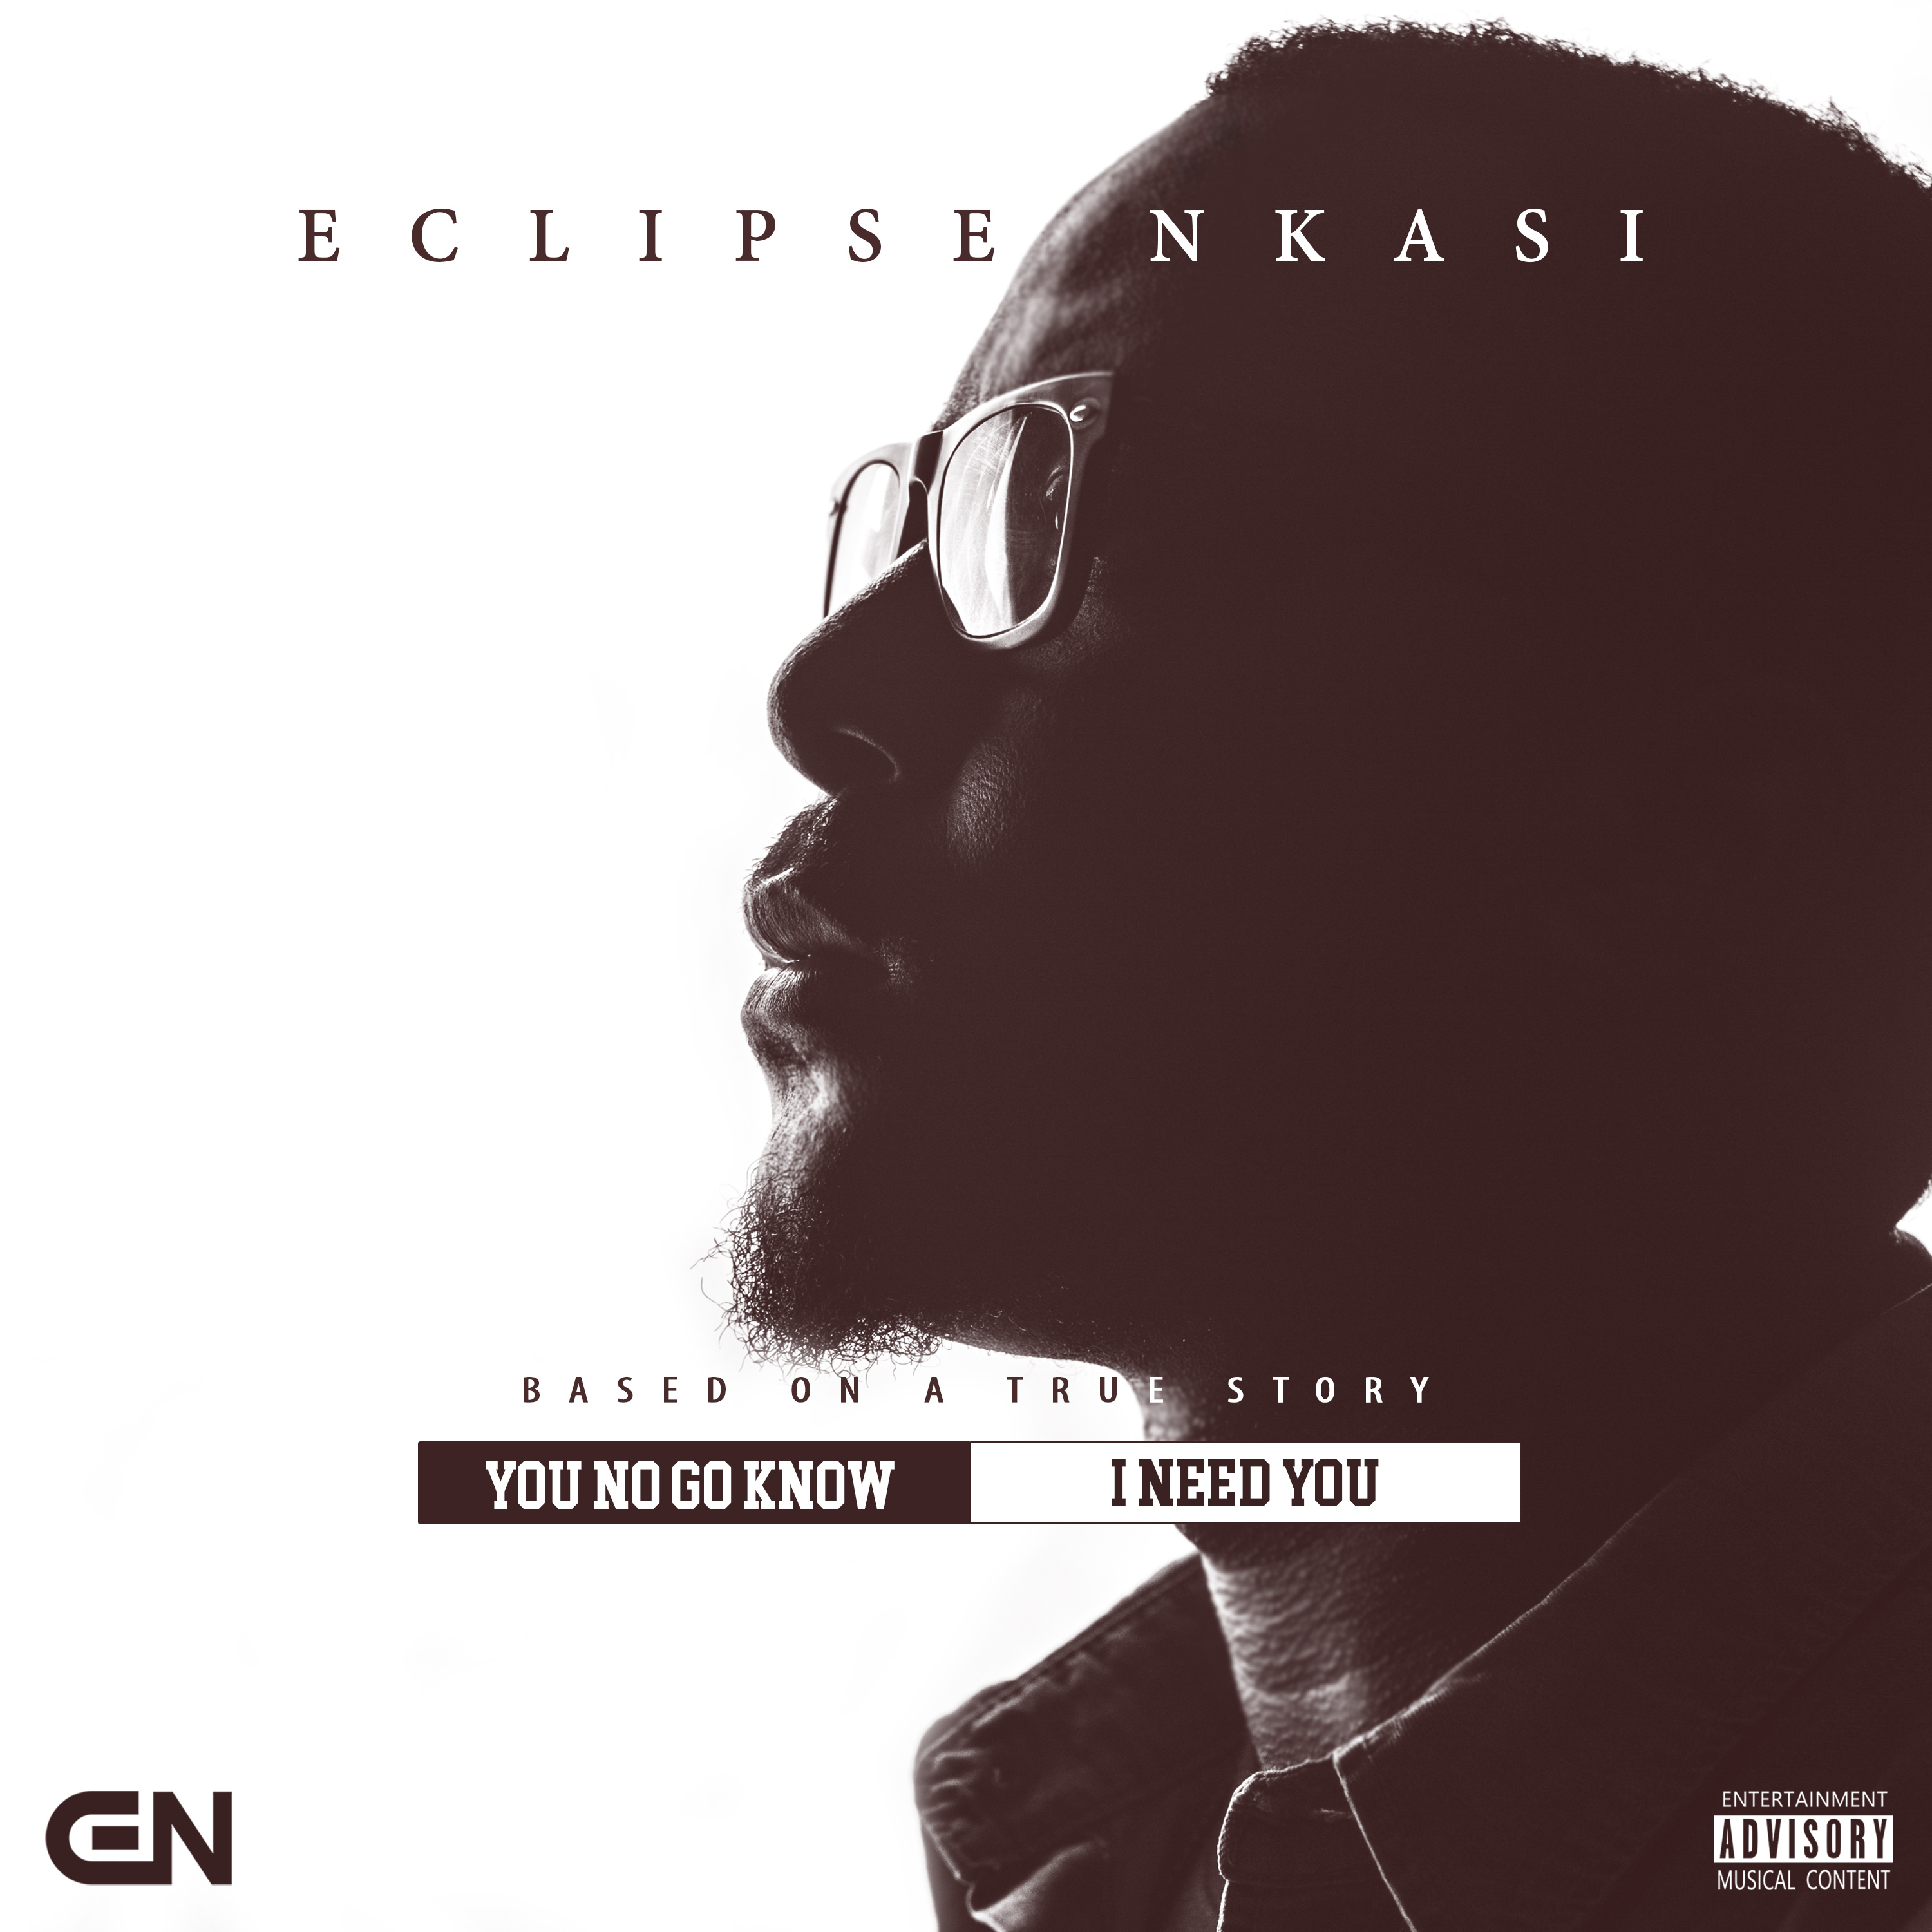 Song No Need Download: Eclipse Nkasi - You No Go Know